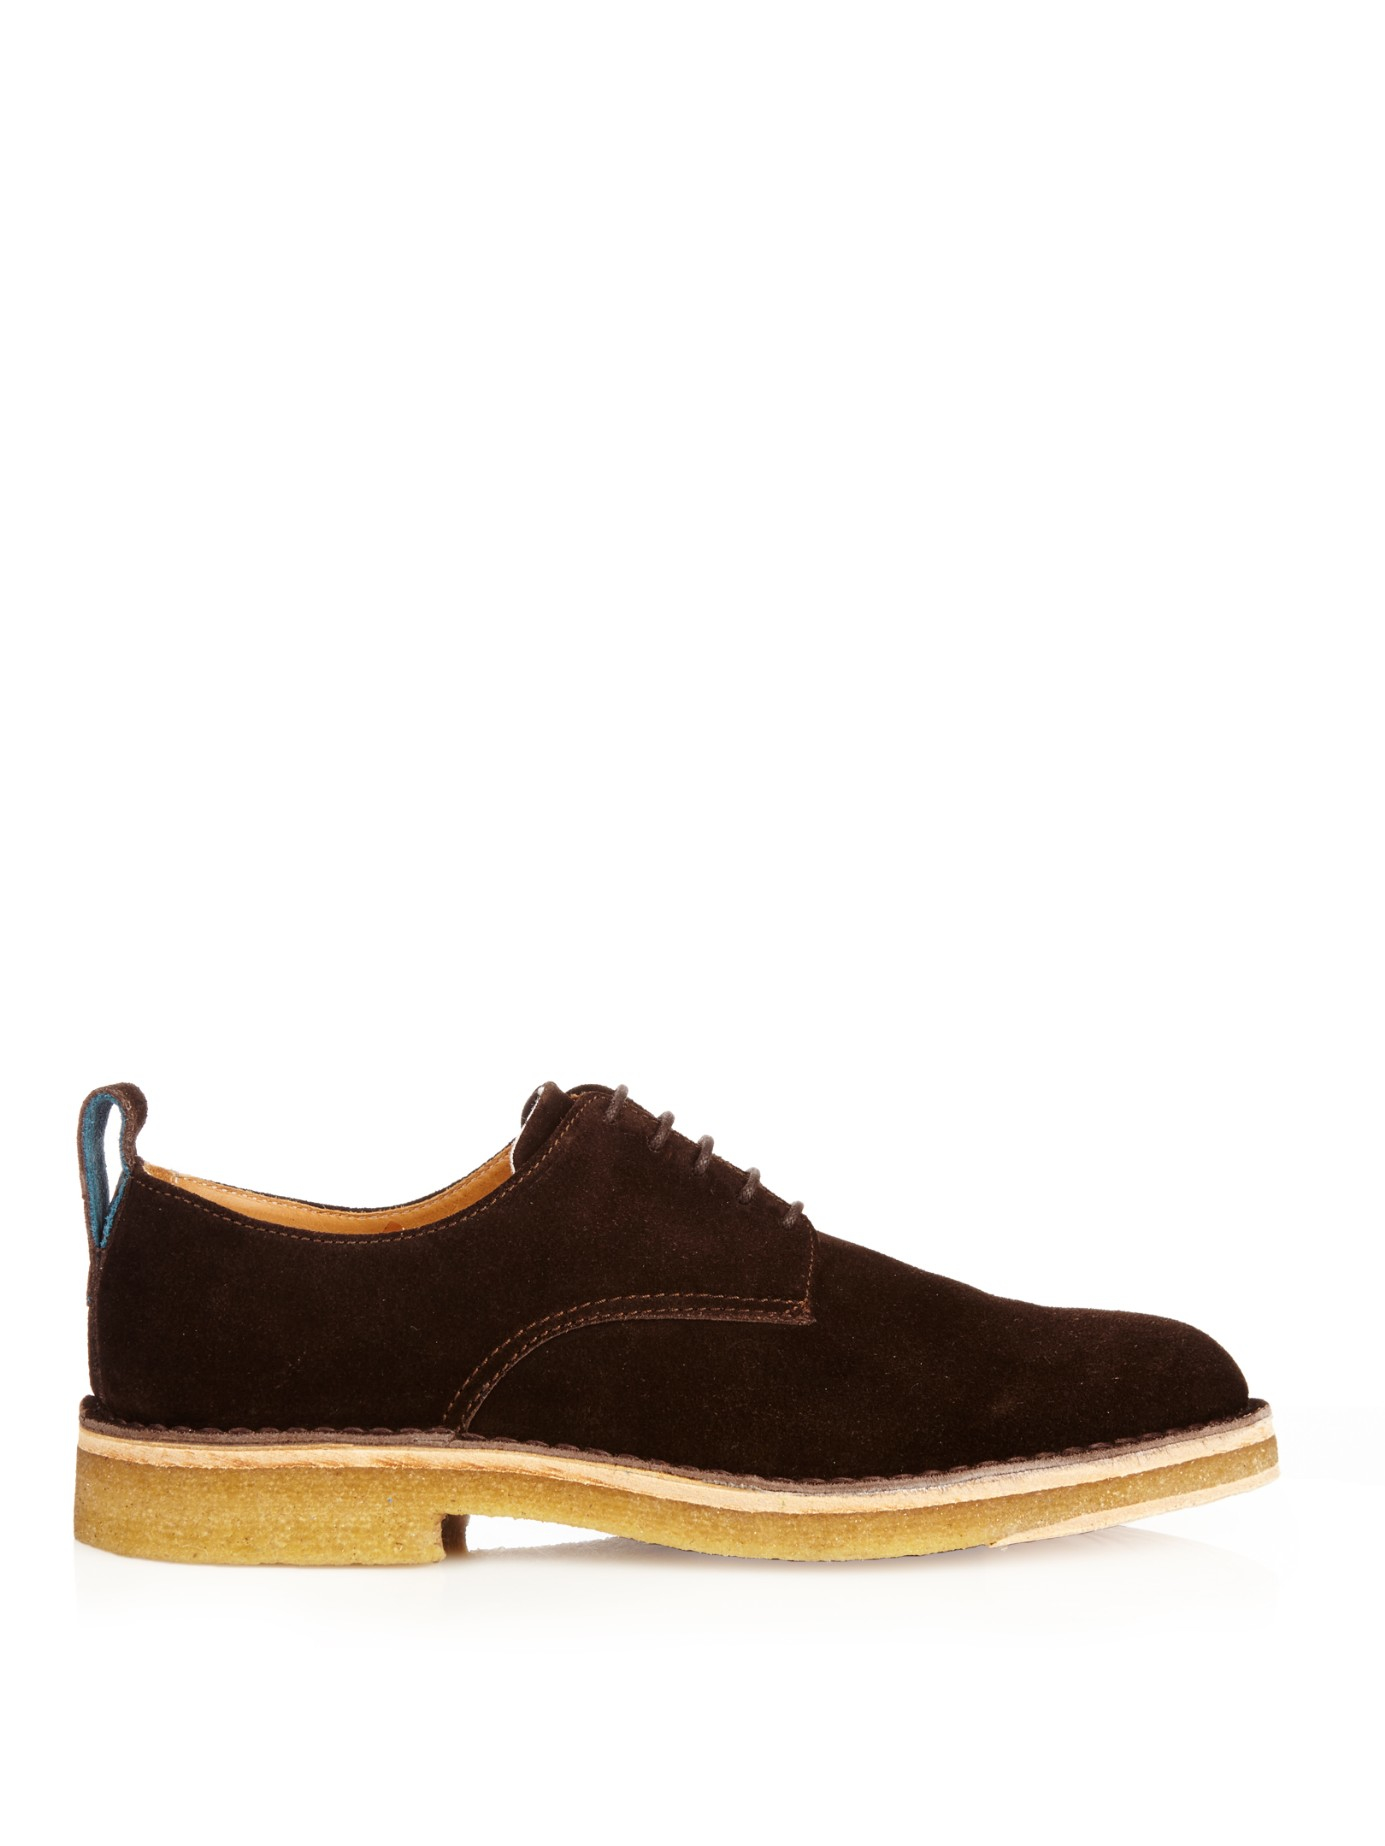 Faconnable Shoes For Men